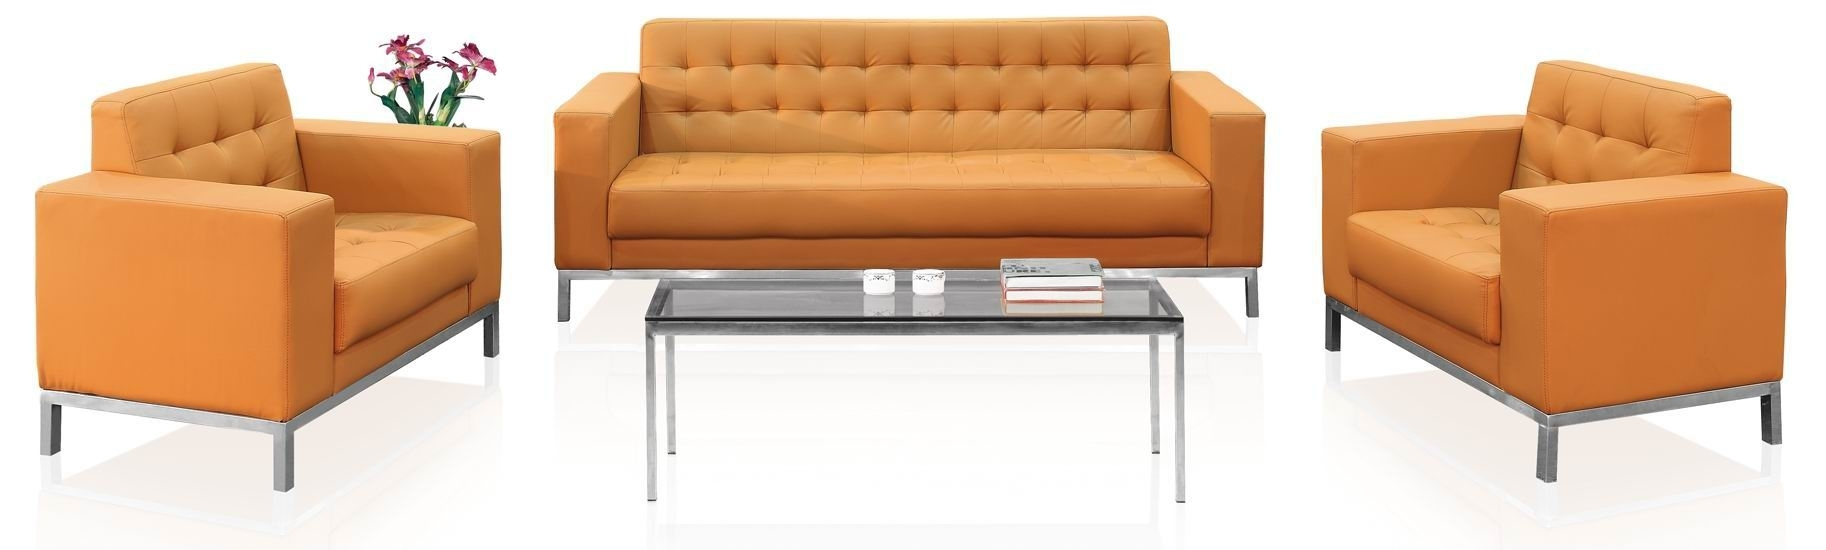 Beautiful Couch For Office 82 For Modern Sofa Inspiration With Couch Within Office Sofas (Image 2 of 10)